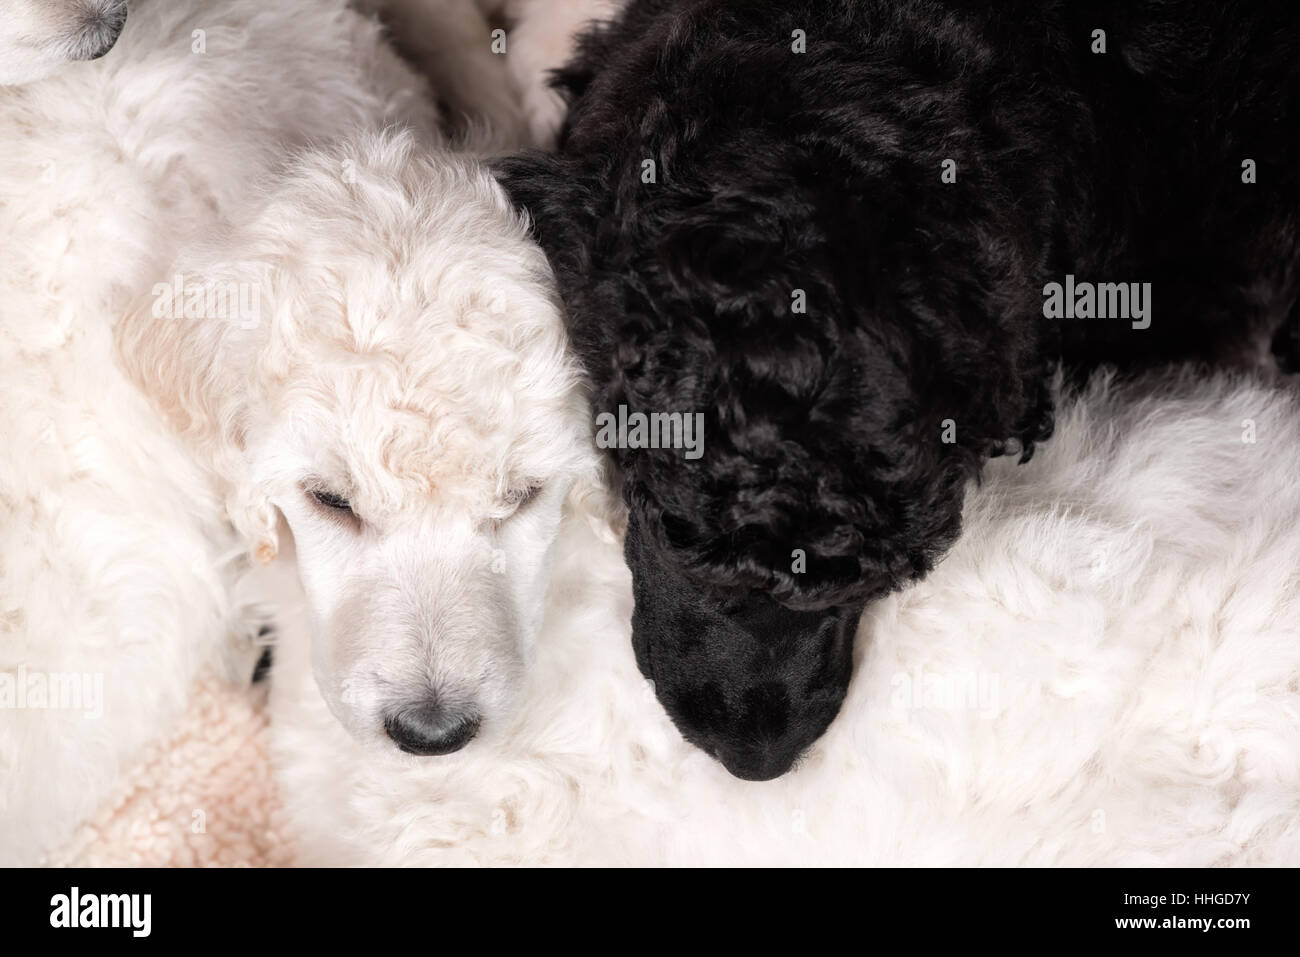 Poodle puppies sleeping side by side on litter mates in top view, black and white together, cute young dogs. - Stock Image